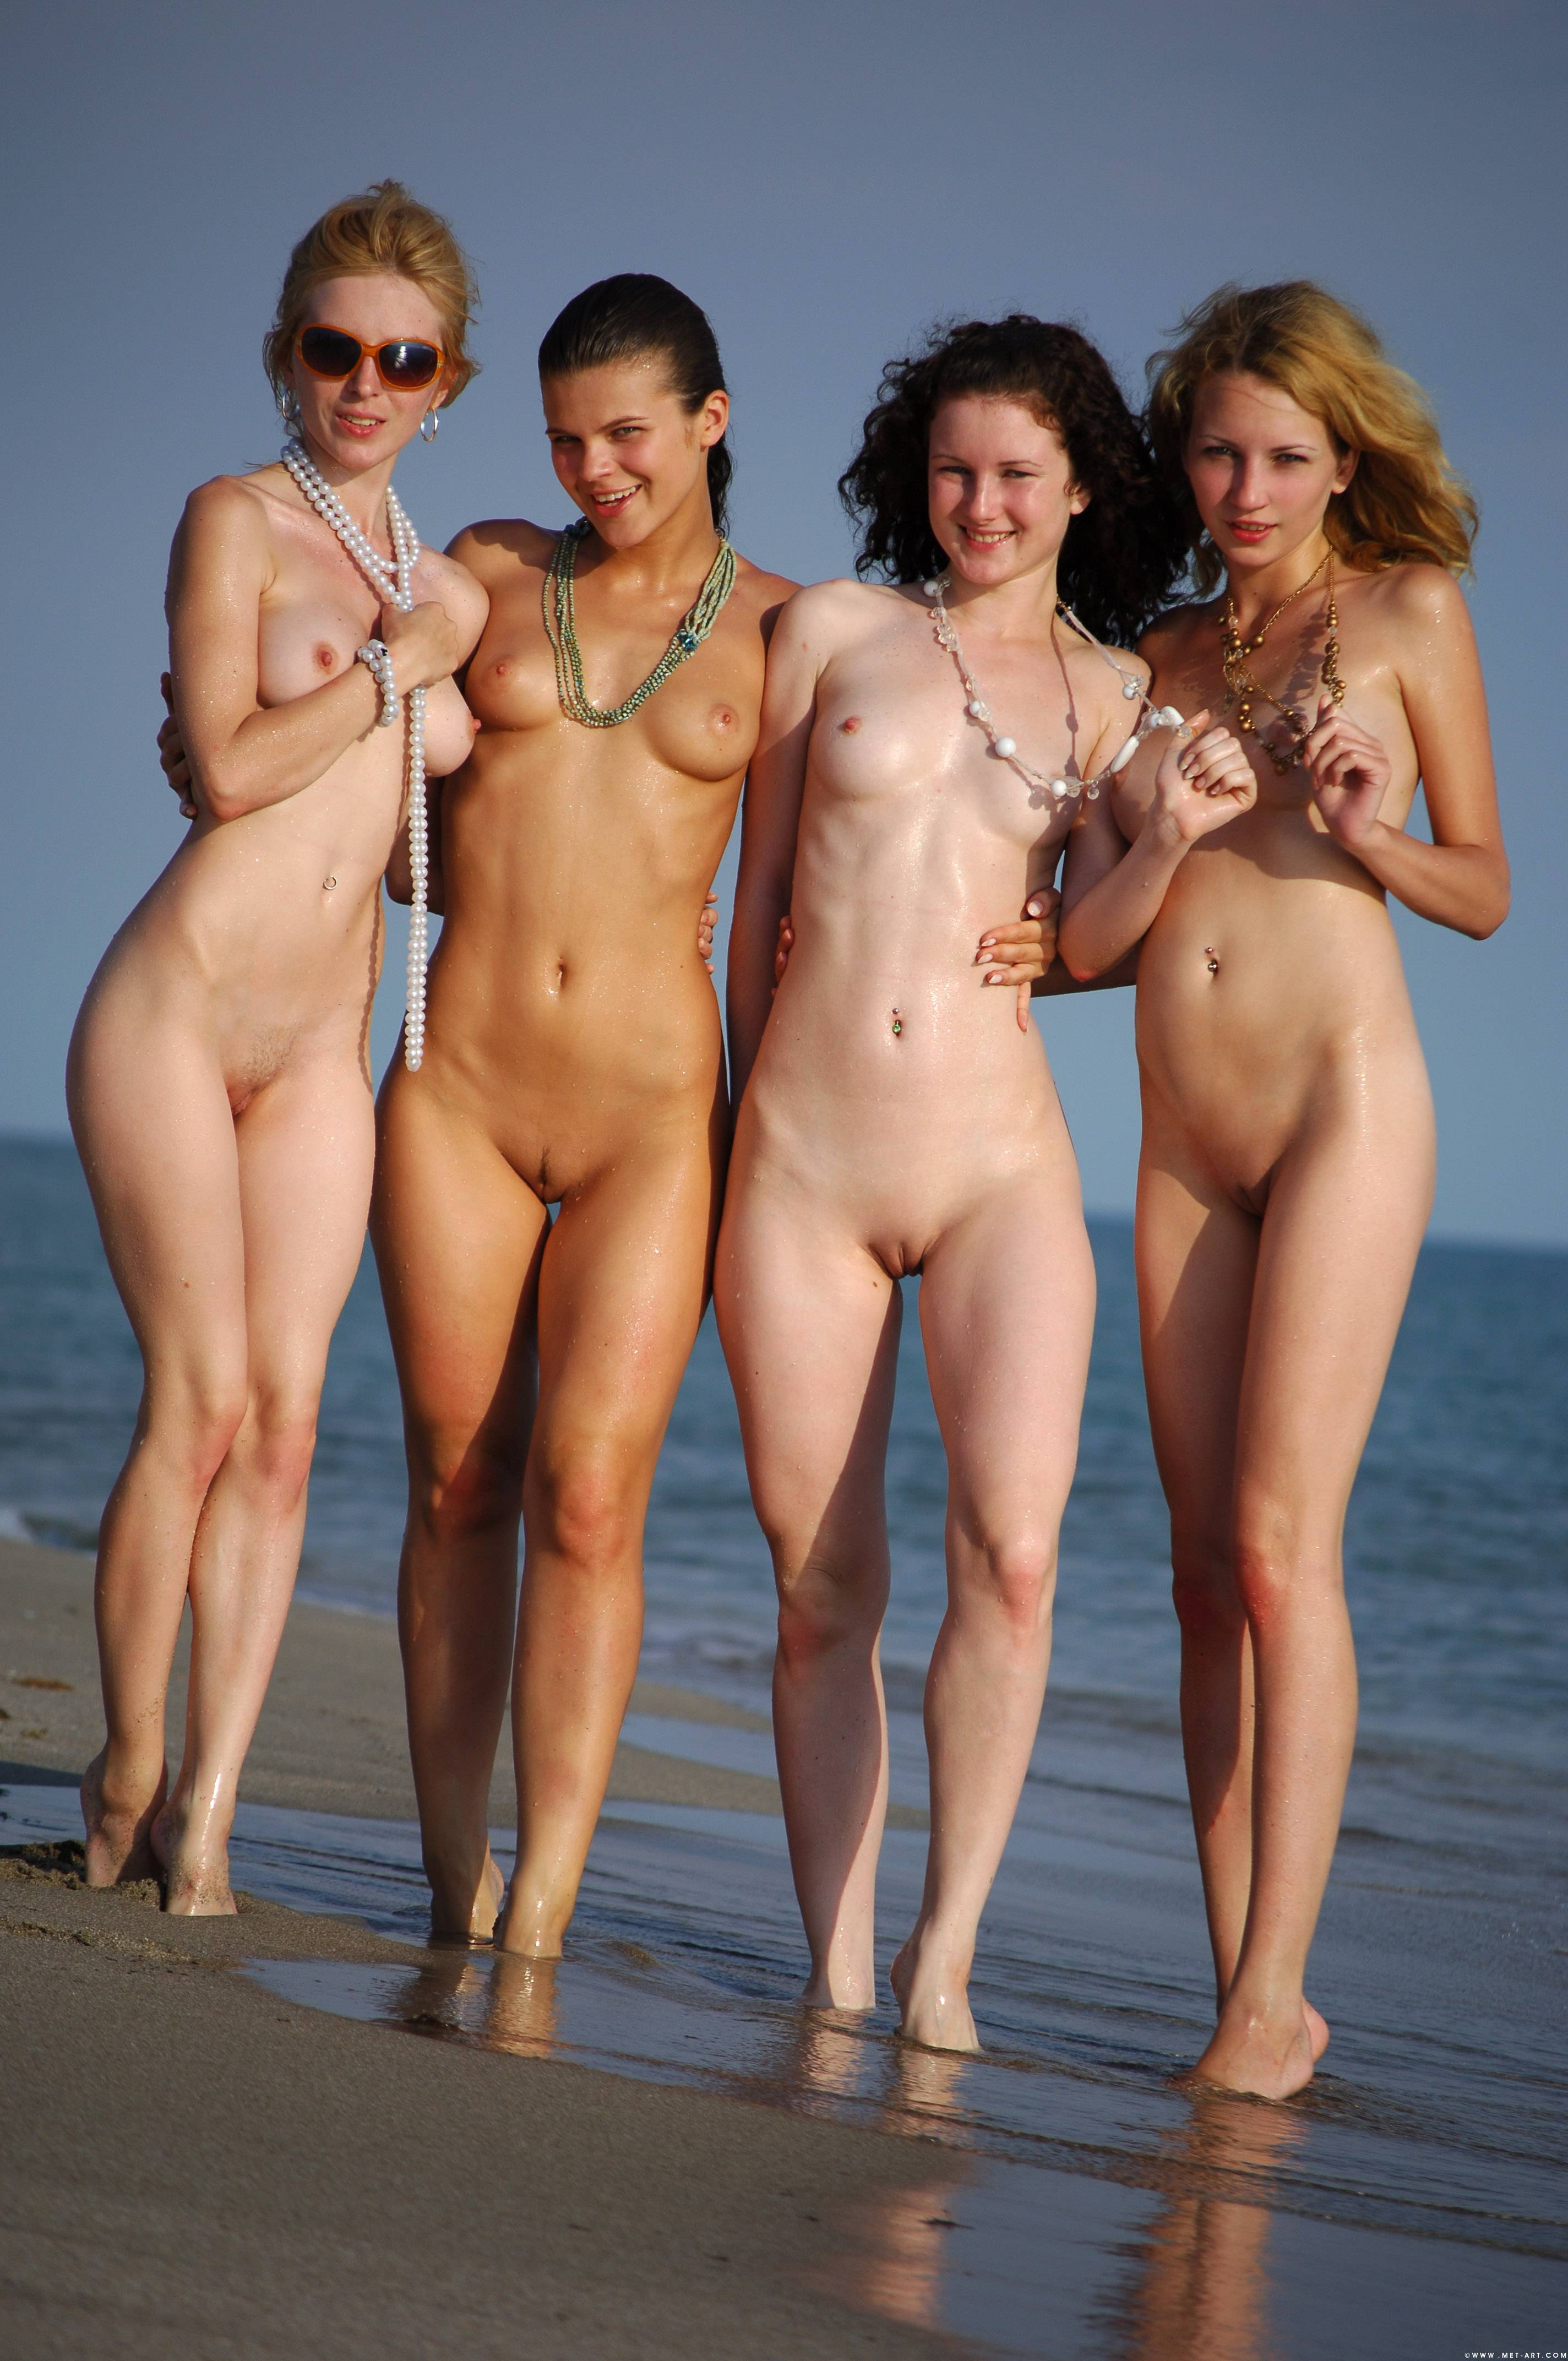 Attractive Naked Girls Sand Photos